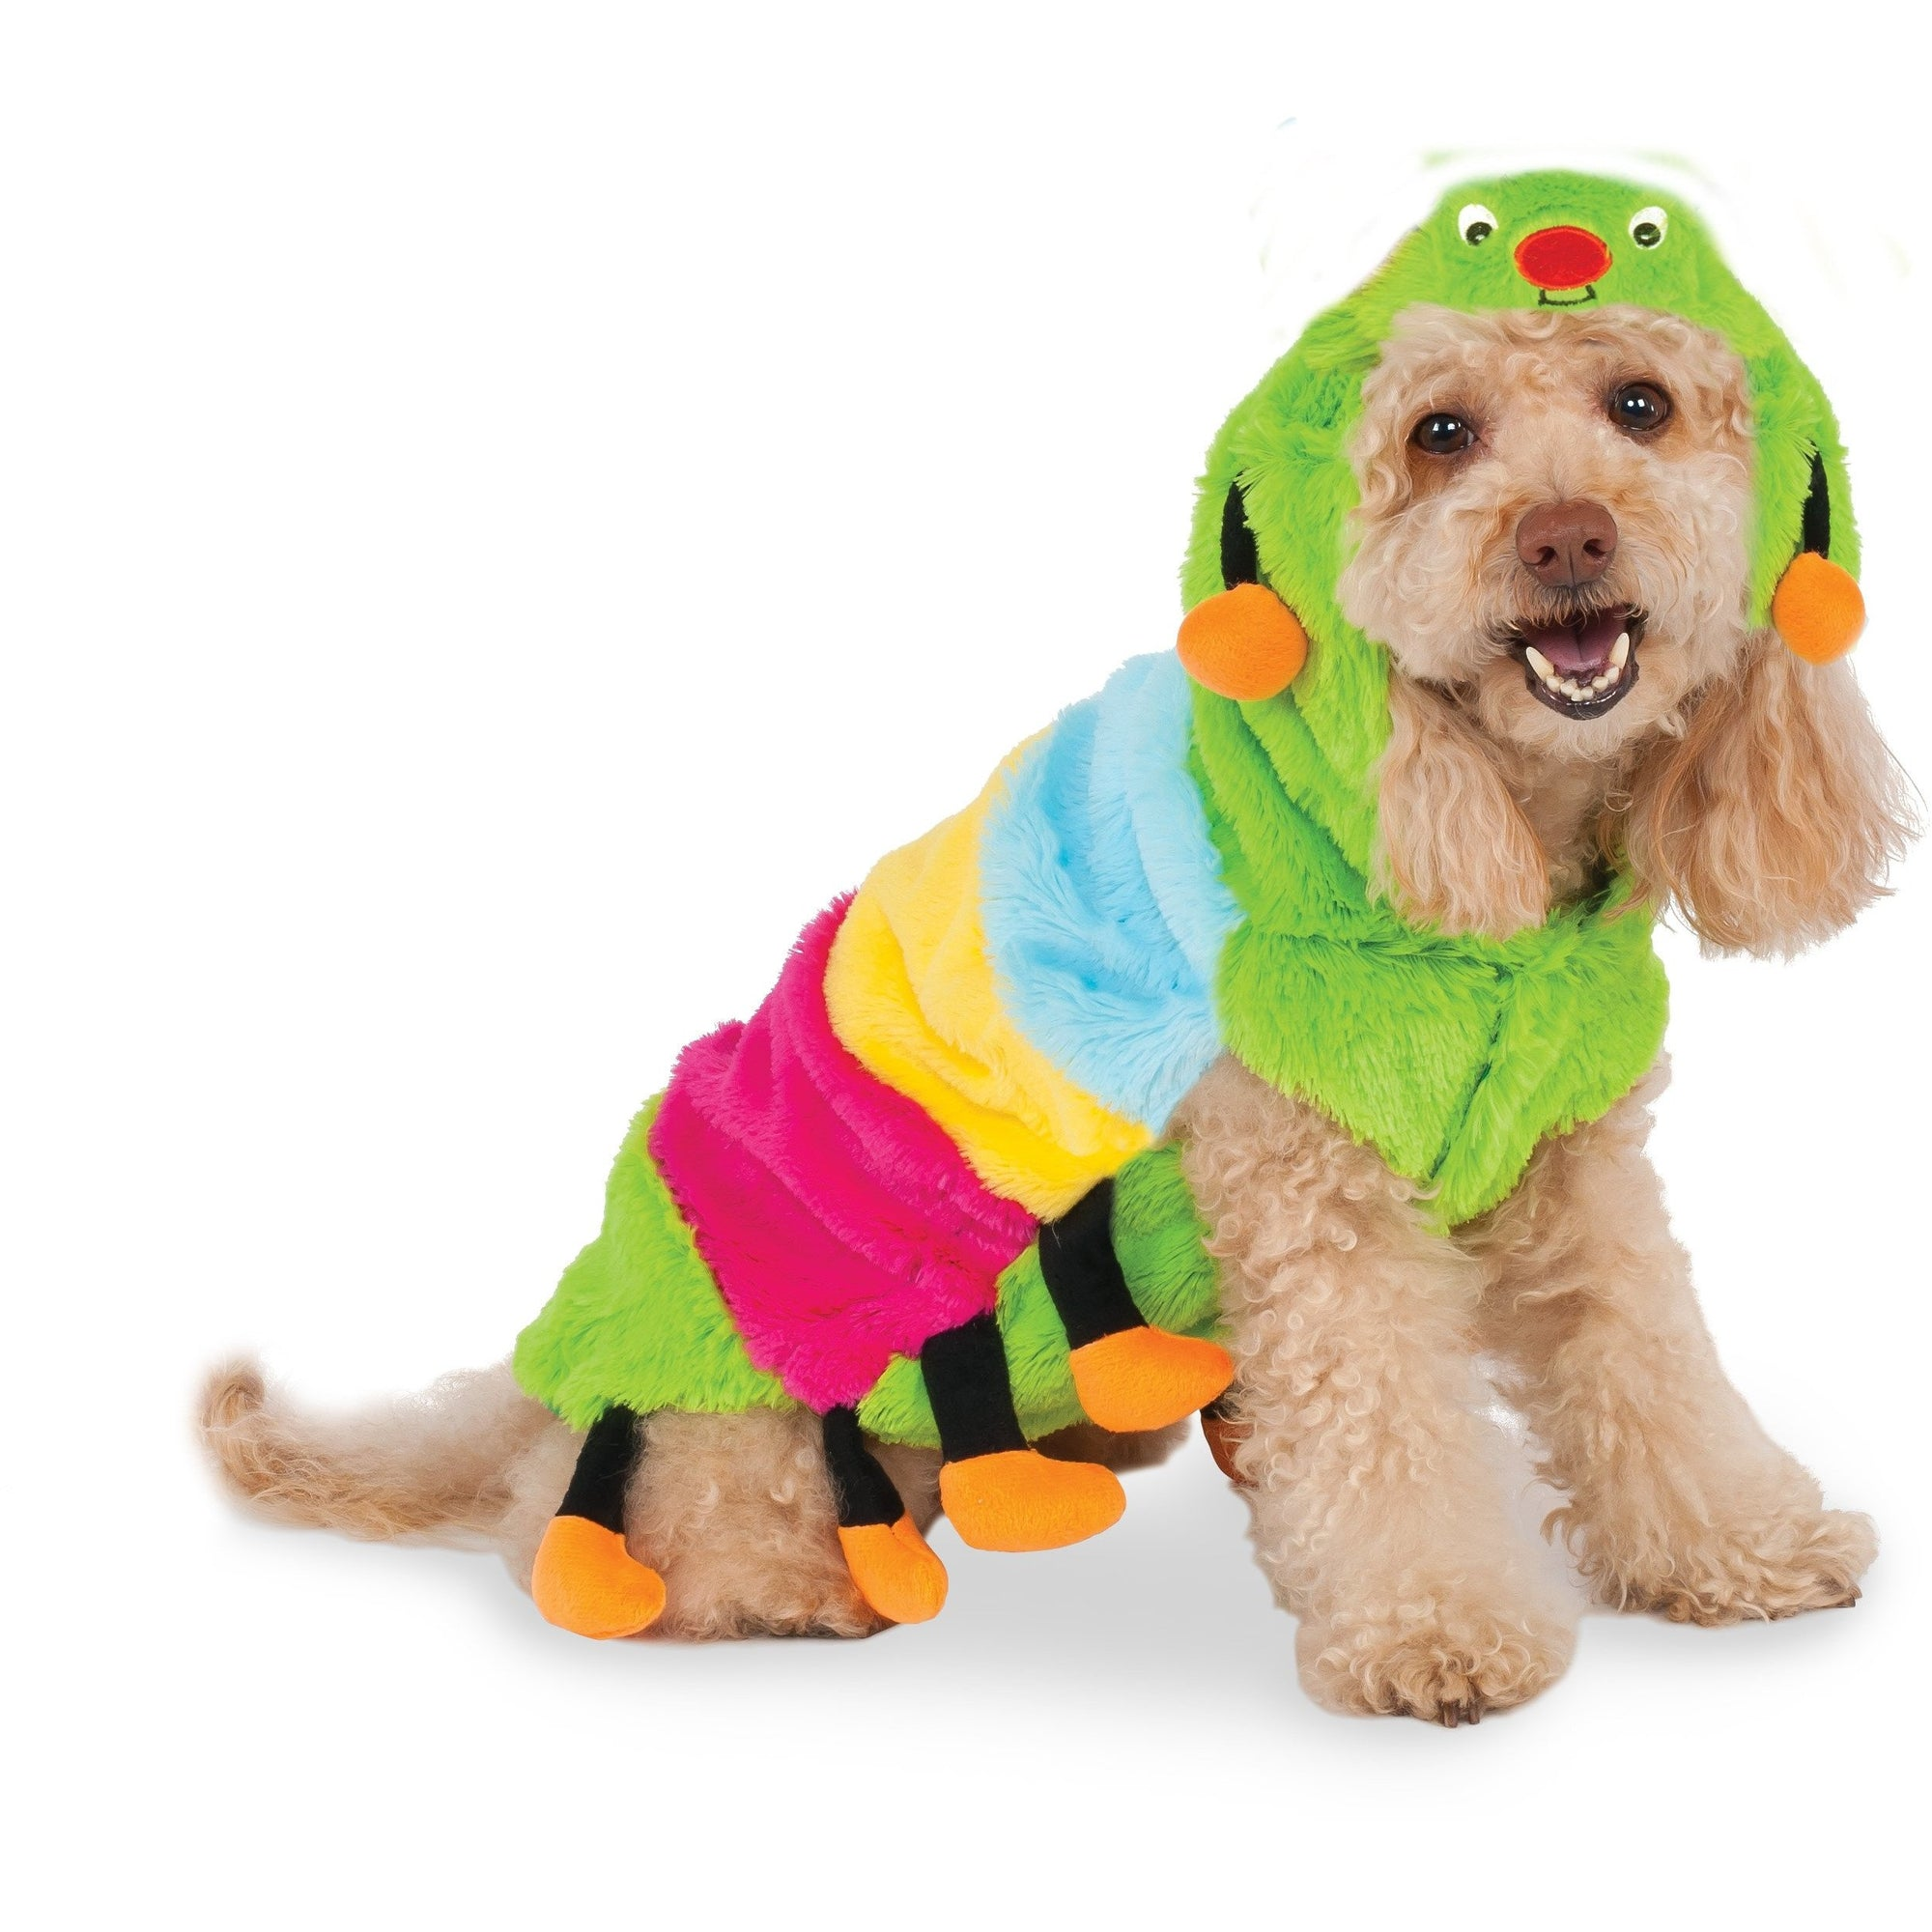 Caterpillar Cutie Pet Costume